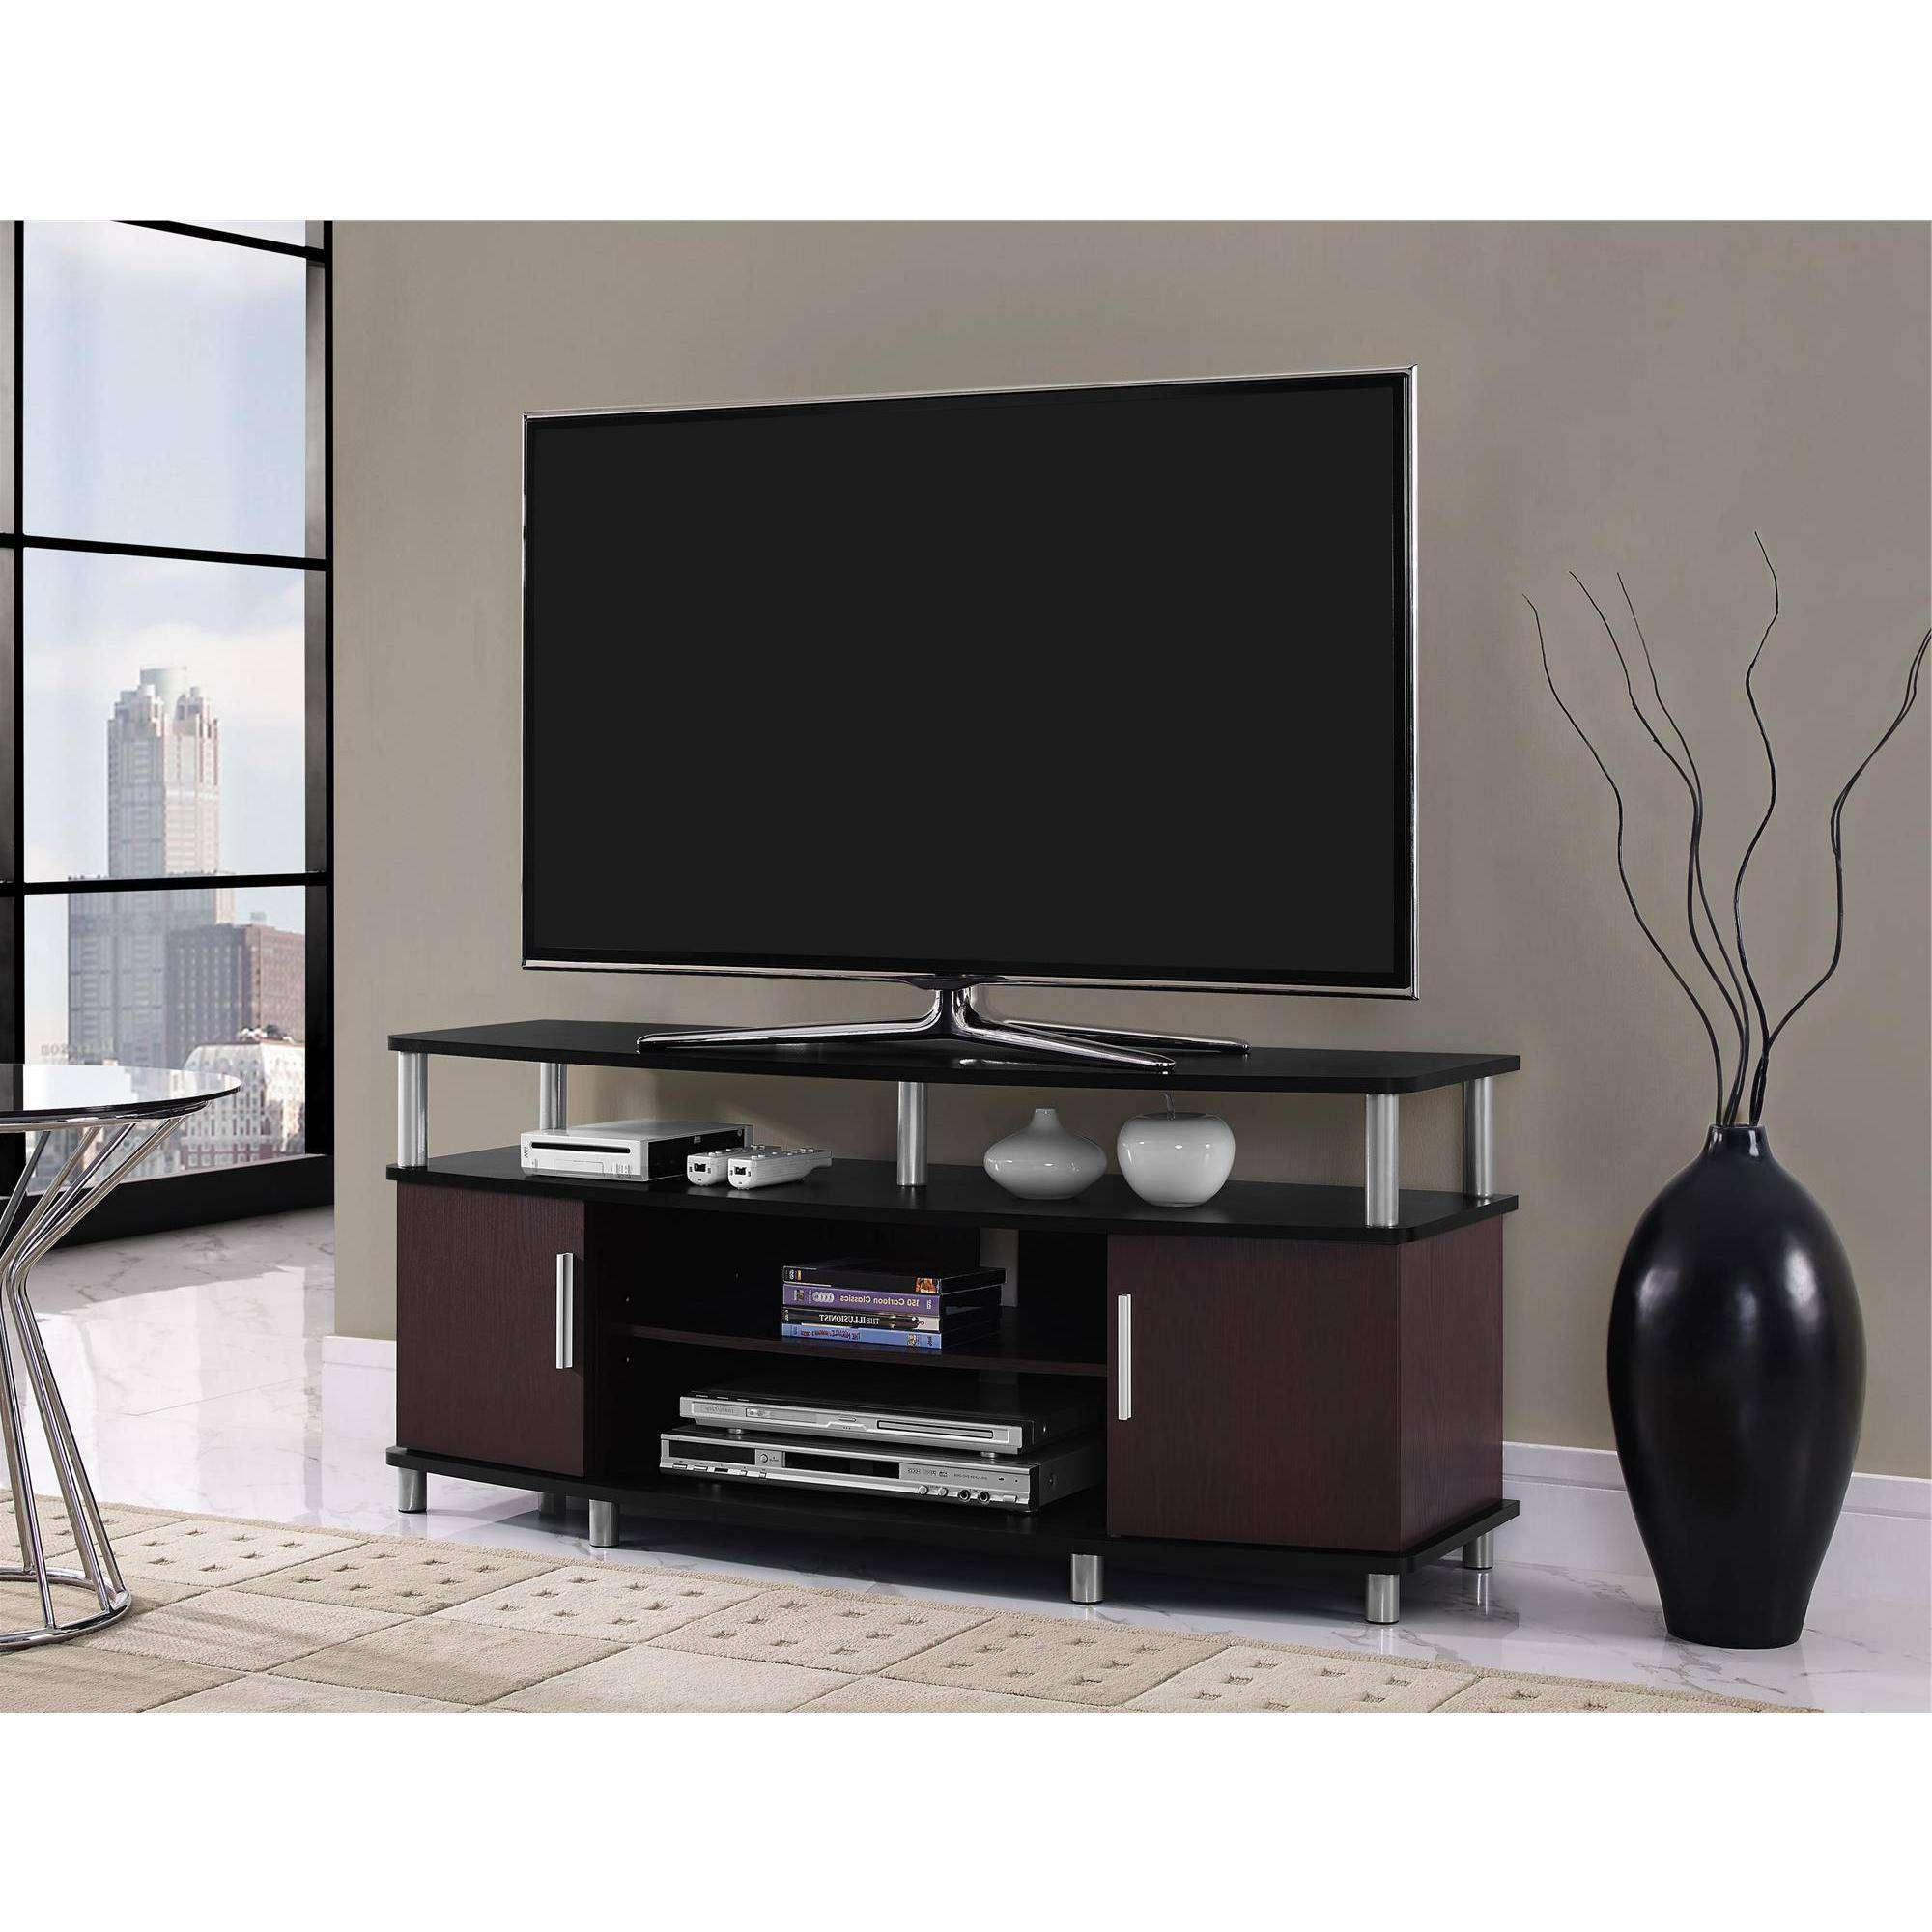 Tv Stands & Entertainment Centers – Walmart For Cabinet Tv Stands (View 8 of 15)